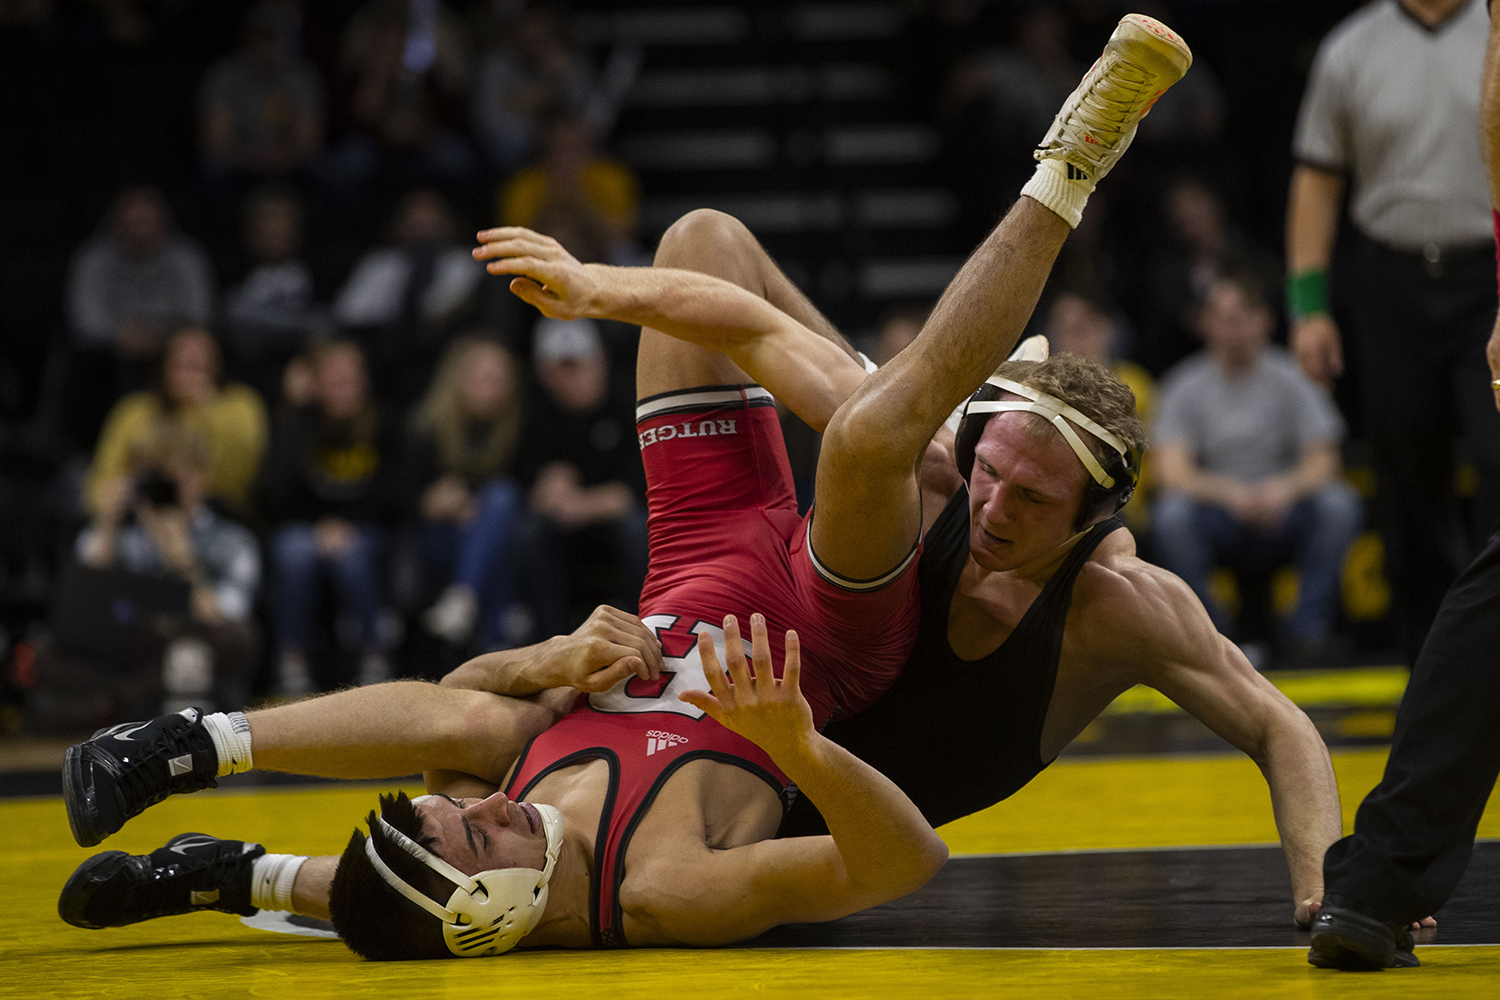 Iowa's #5 Kaleb Young wrestles Rutgers' #14 John Van Brill during the Iowa/Rutgers wrestling meet at Carver-Hawkeye Arena on Friday, January 18, 2019. Young defeated, 3-0. The Hawkeyes defeated the Scarlet Knights, 30-6. (Lily Smith/The Daily Iowan)